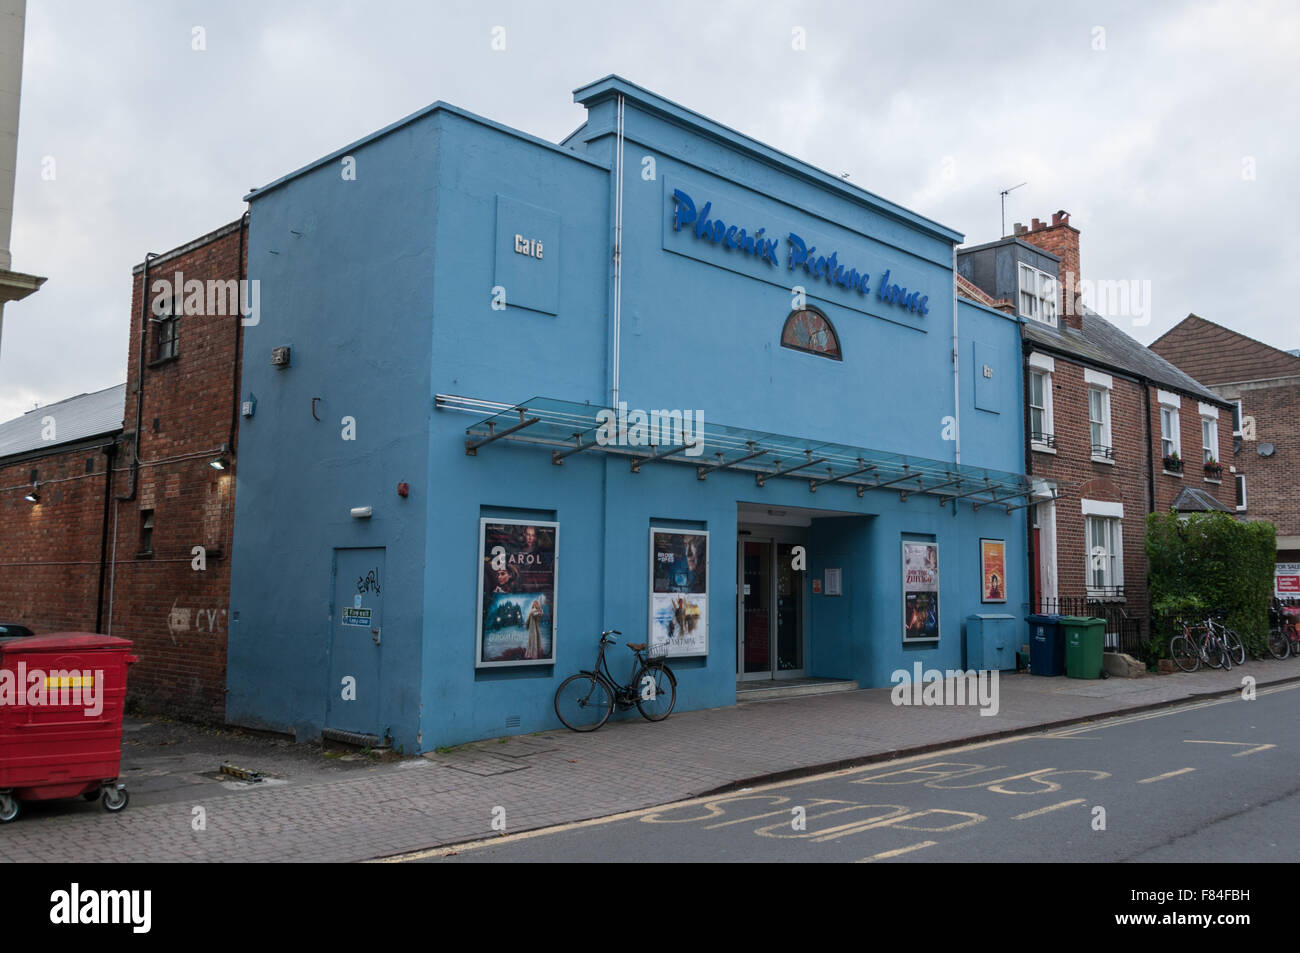 The Phoenix Picture House in Jericho, Oxford, United Kingdom - Stock Image